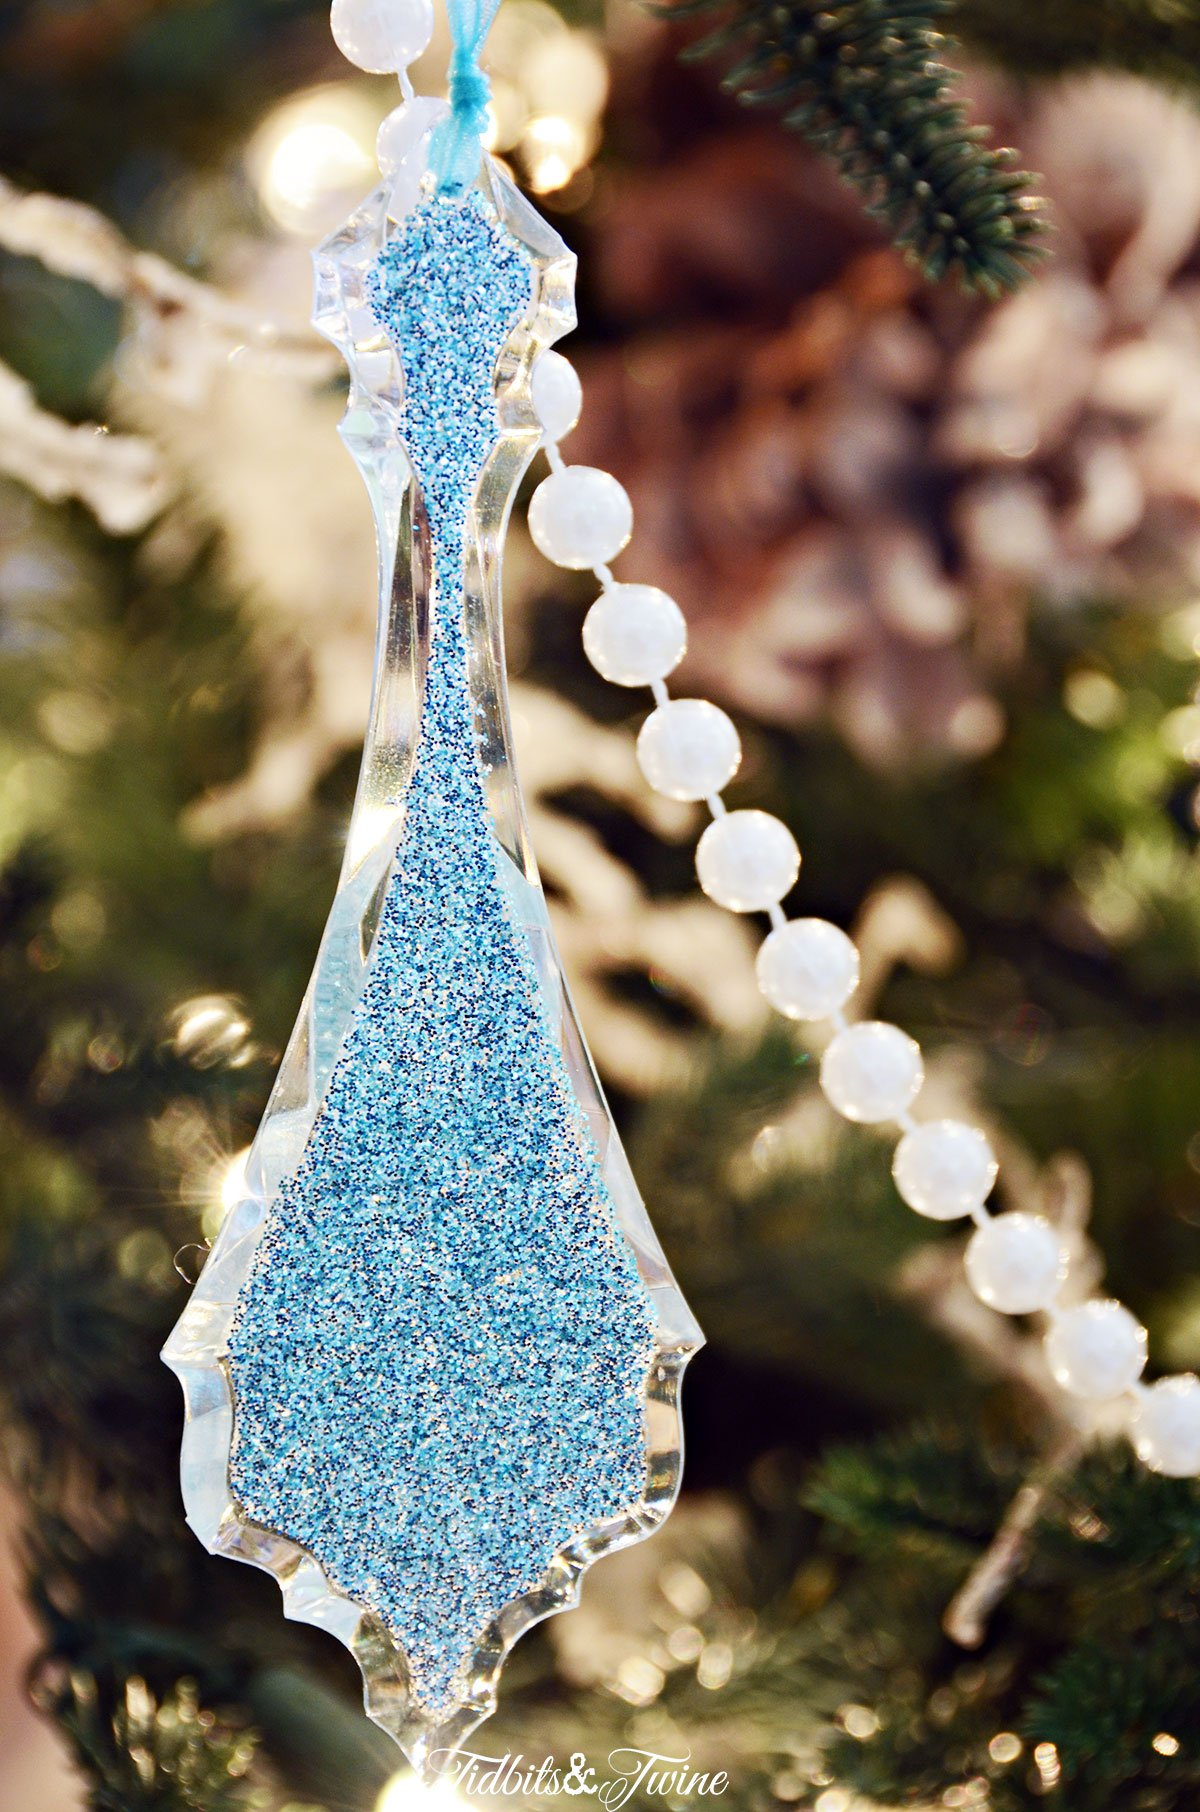 TIDBITS&TWINE-Christmas-Tree-2015-Blue-Frost-Ornaments